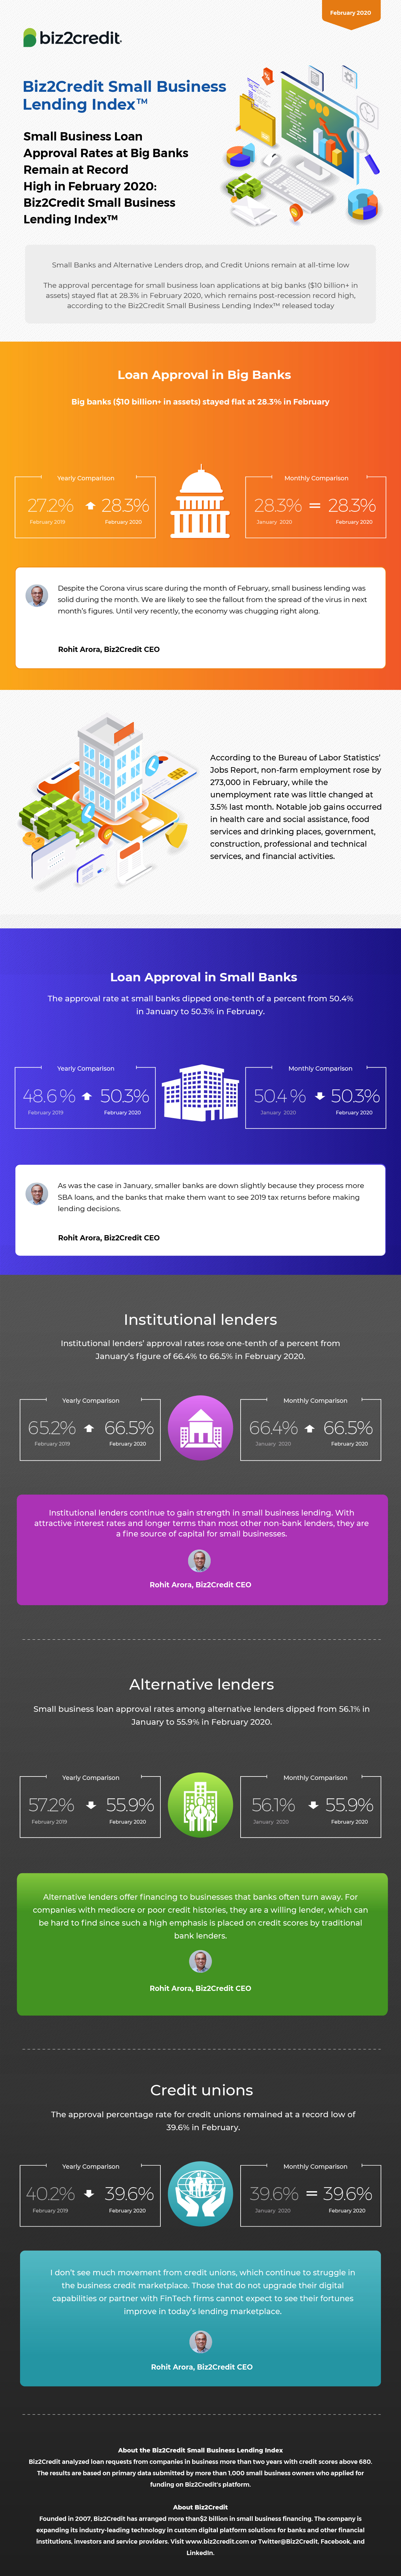 February 2020 Lending Index Infographic